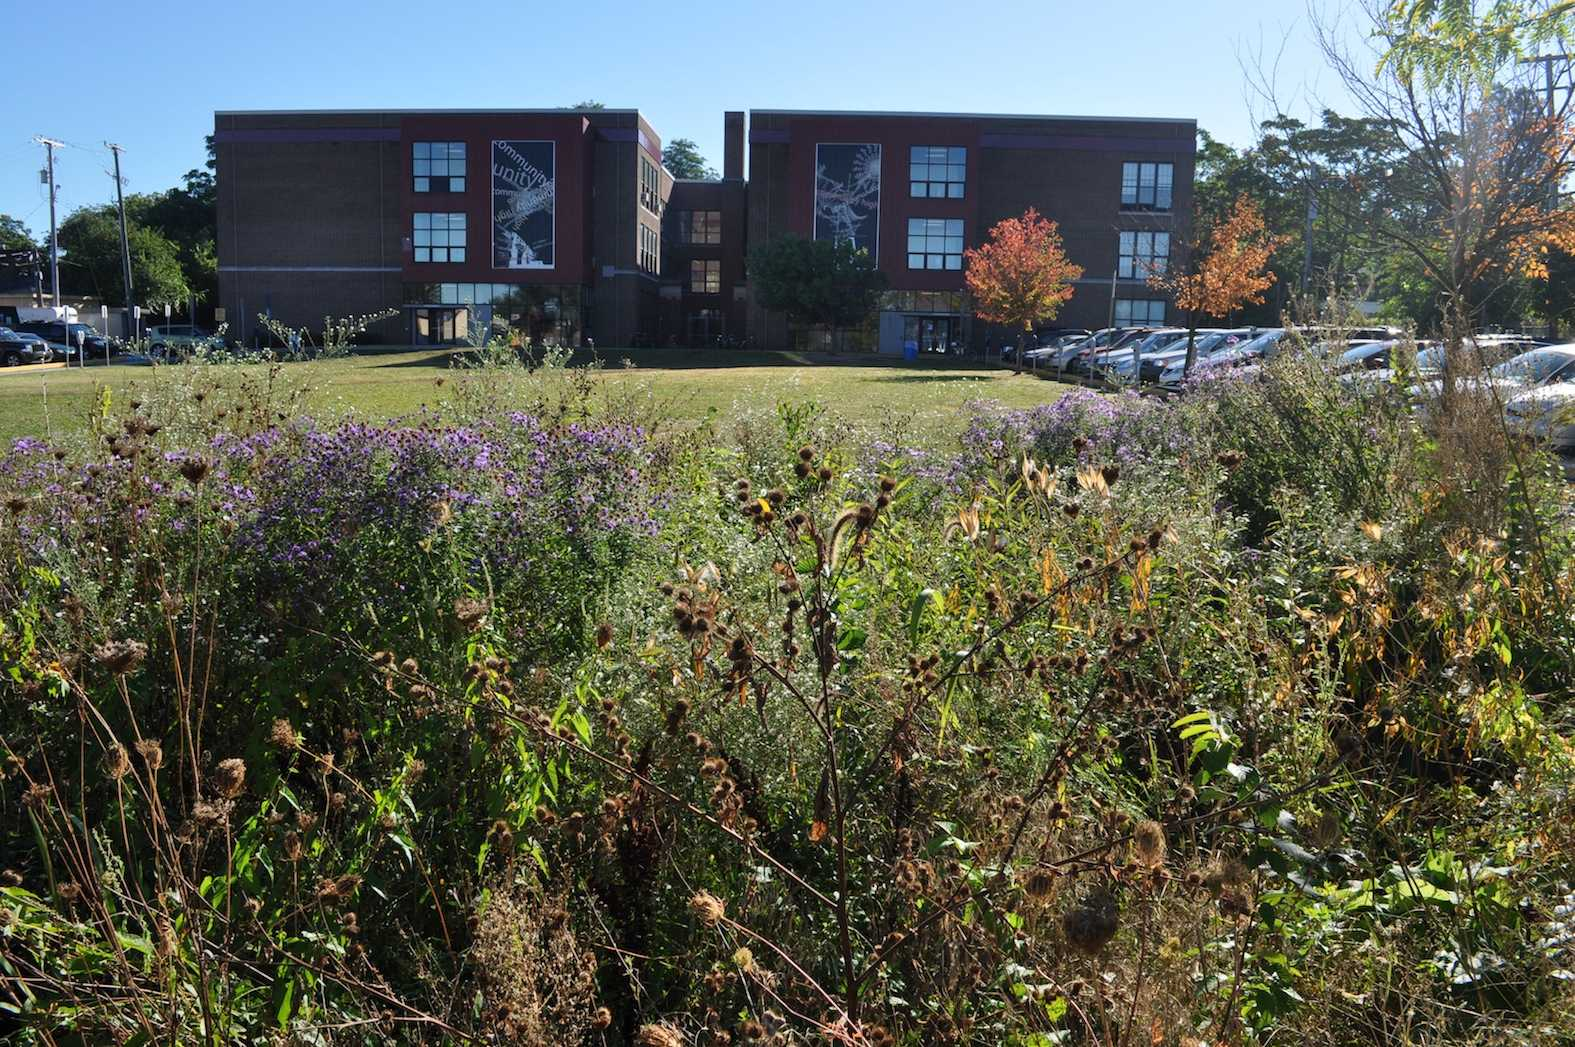 This rain garden in the back lawn was designed by the CHS Ecology Club.